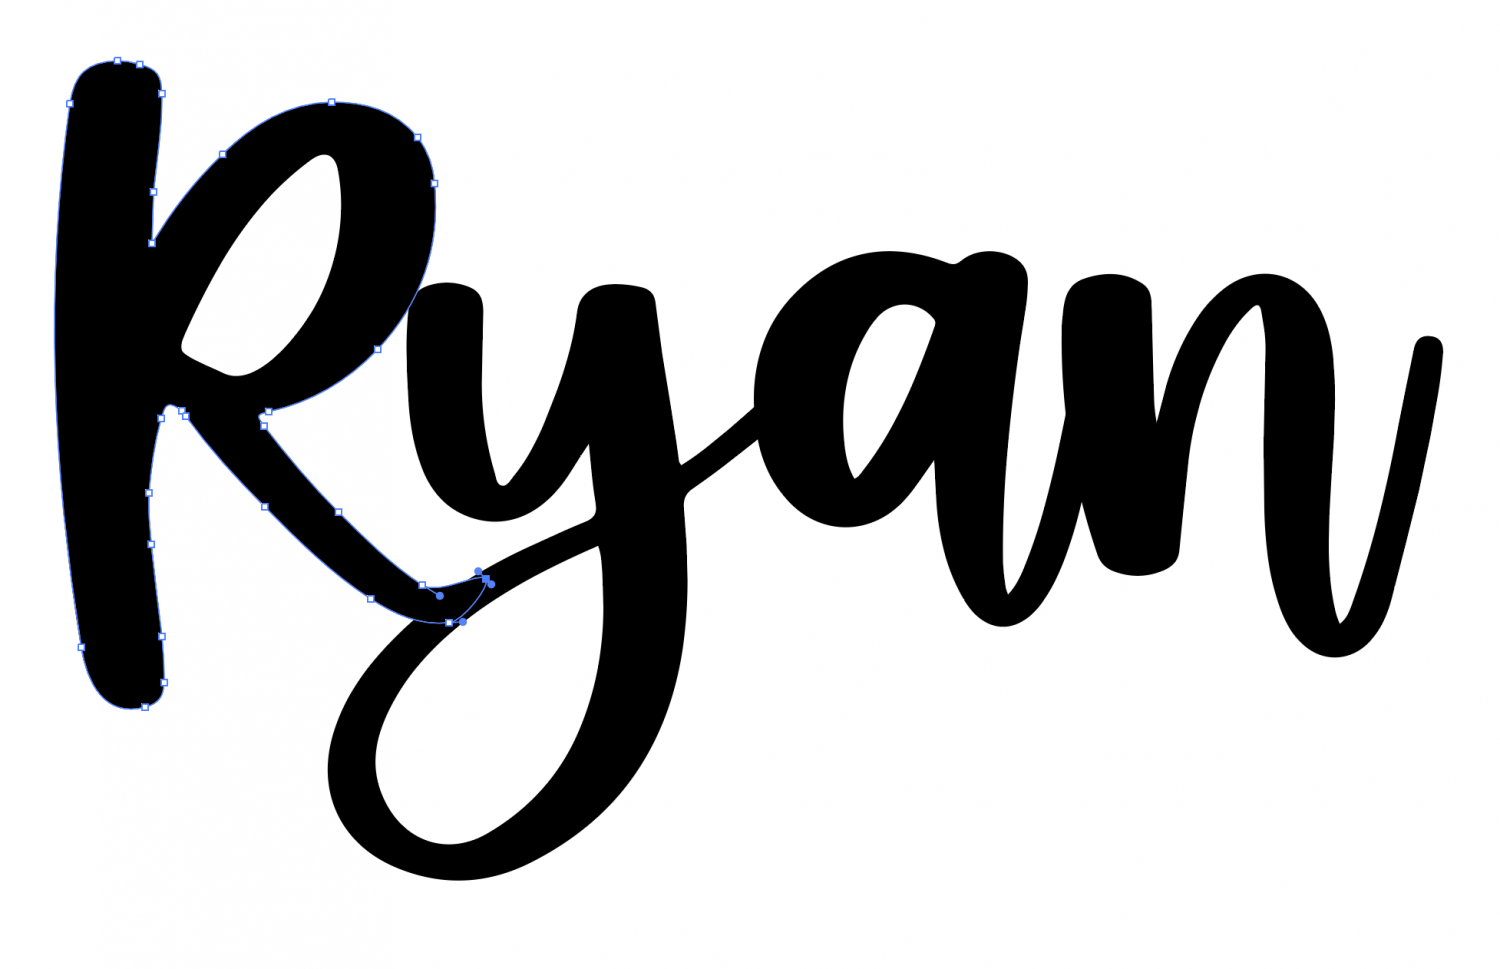 Closeup of Ryan with the tail of the R smoothed out in AI